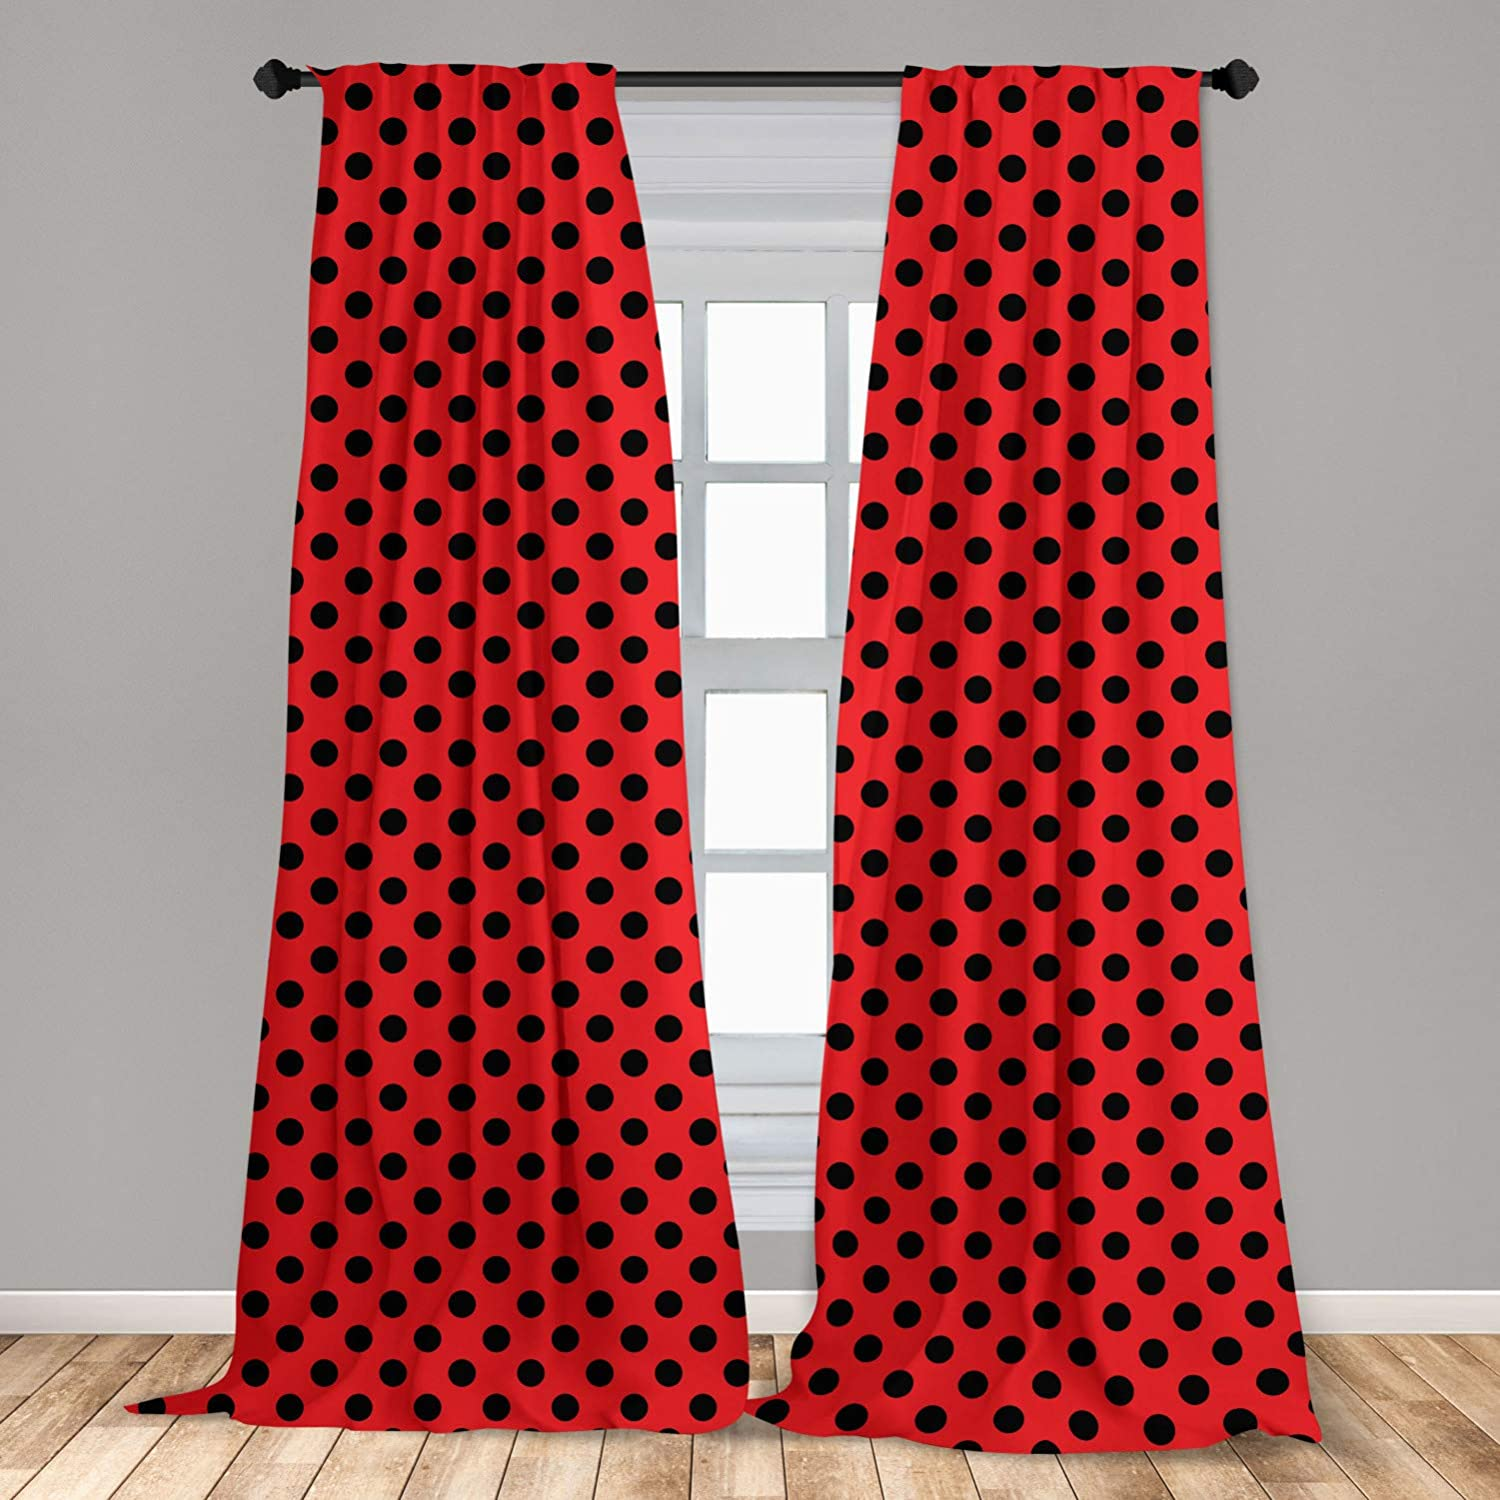 """Ambesonne Red and Black Curtains, Retro Vintage Pop Art Theme Old 60s 50s Rocker Inspired Bold Polka Dots Image, Window Treatments 2 Panel Set for Living Room Bedroom Decor, 56"""" x 63"""", Scarlet"""